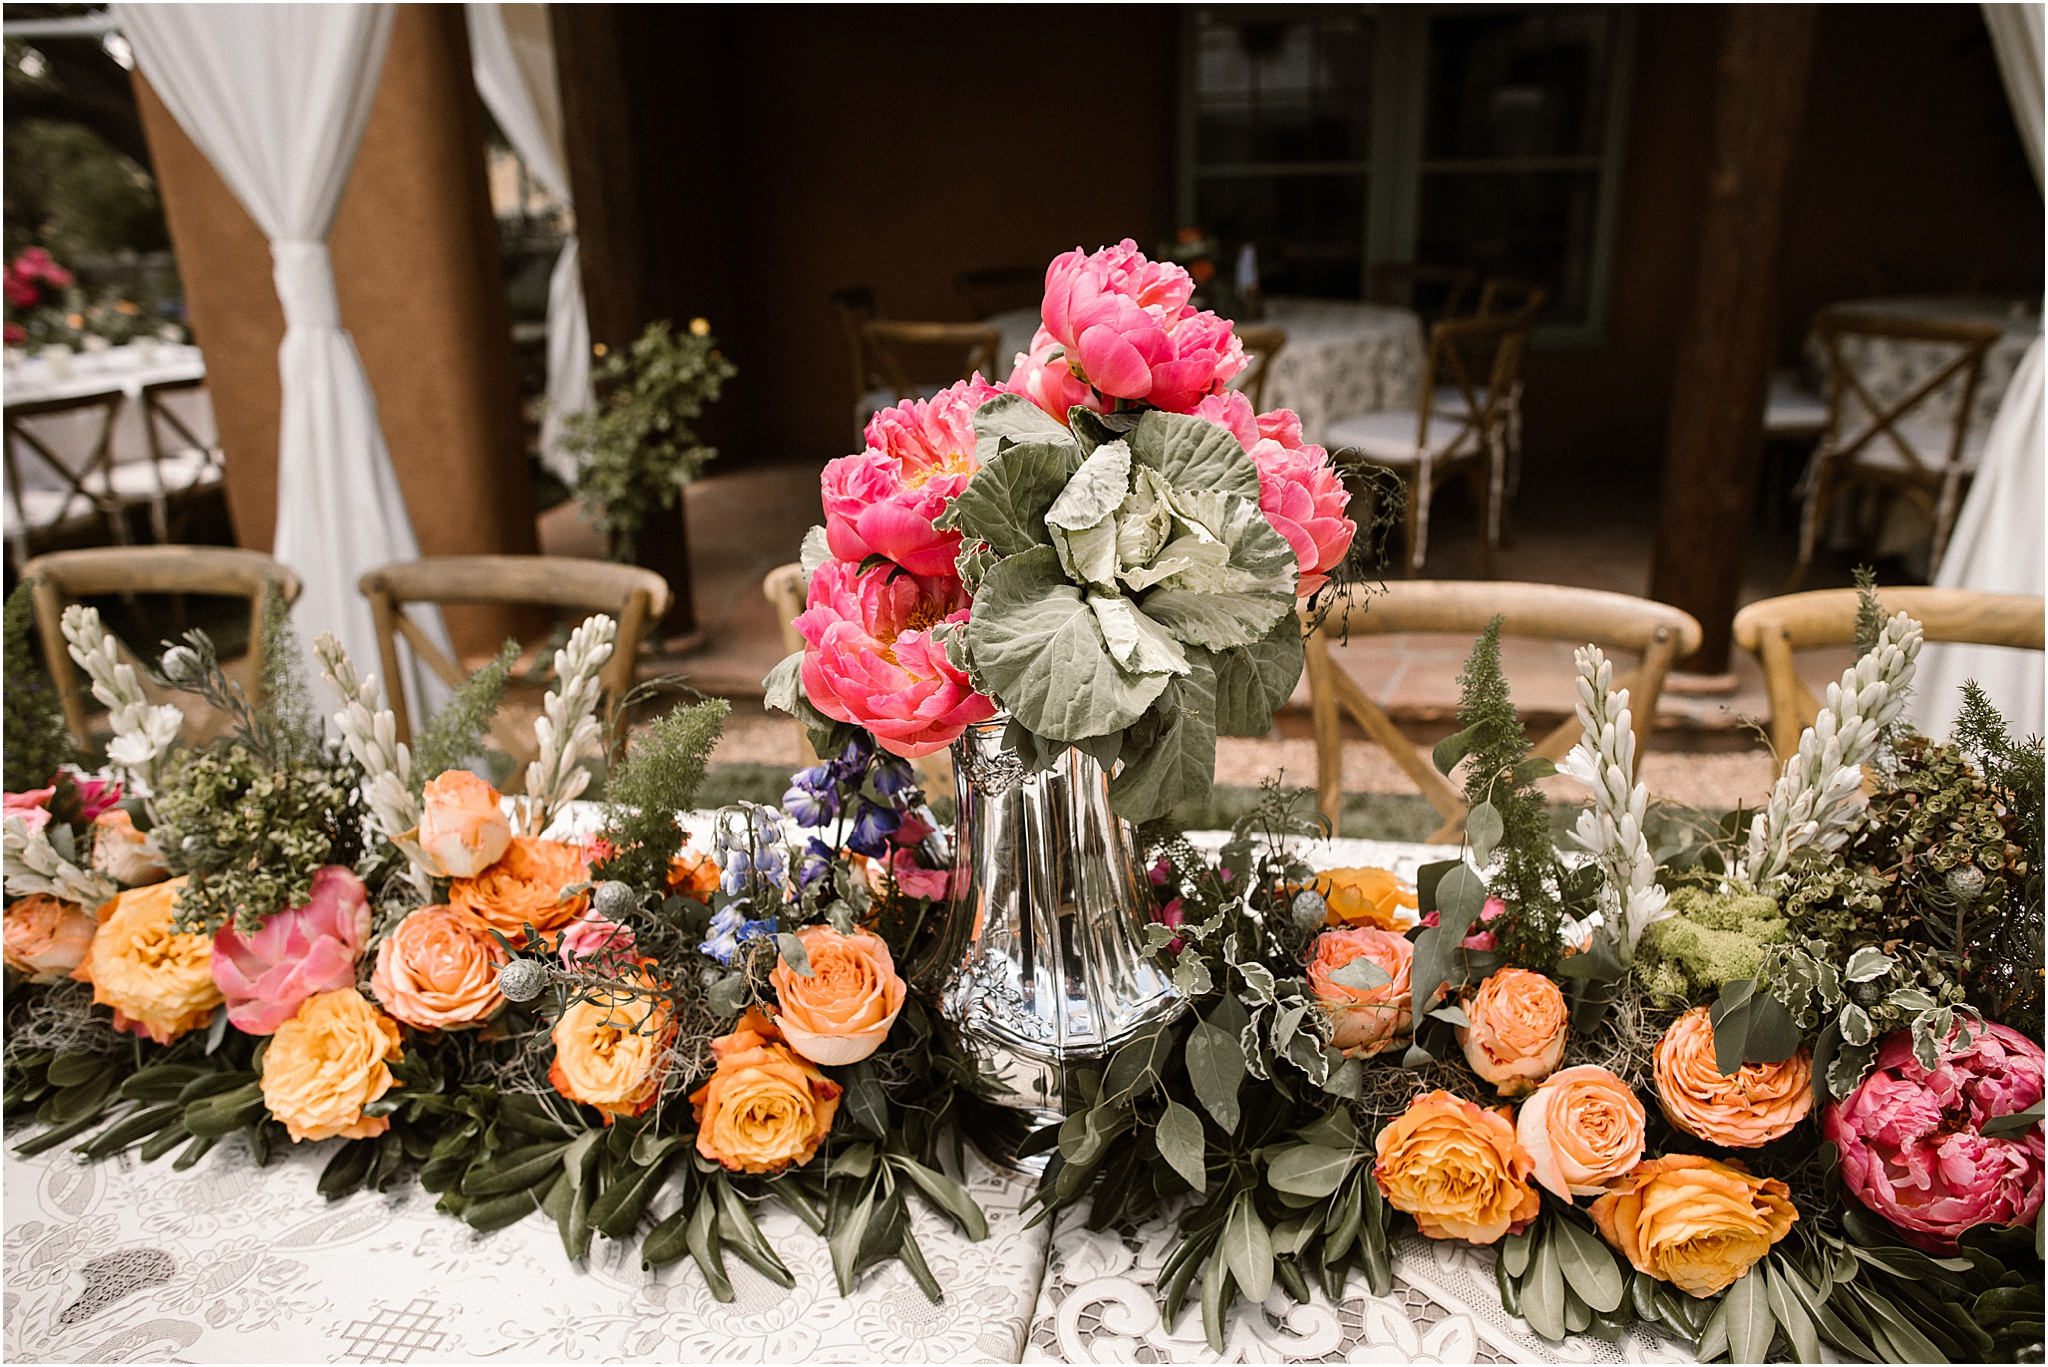 AMELIA_JASON_SANTA FE_ WEDDING_BLUE ROSE PHOTOGRAPHY16